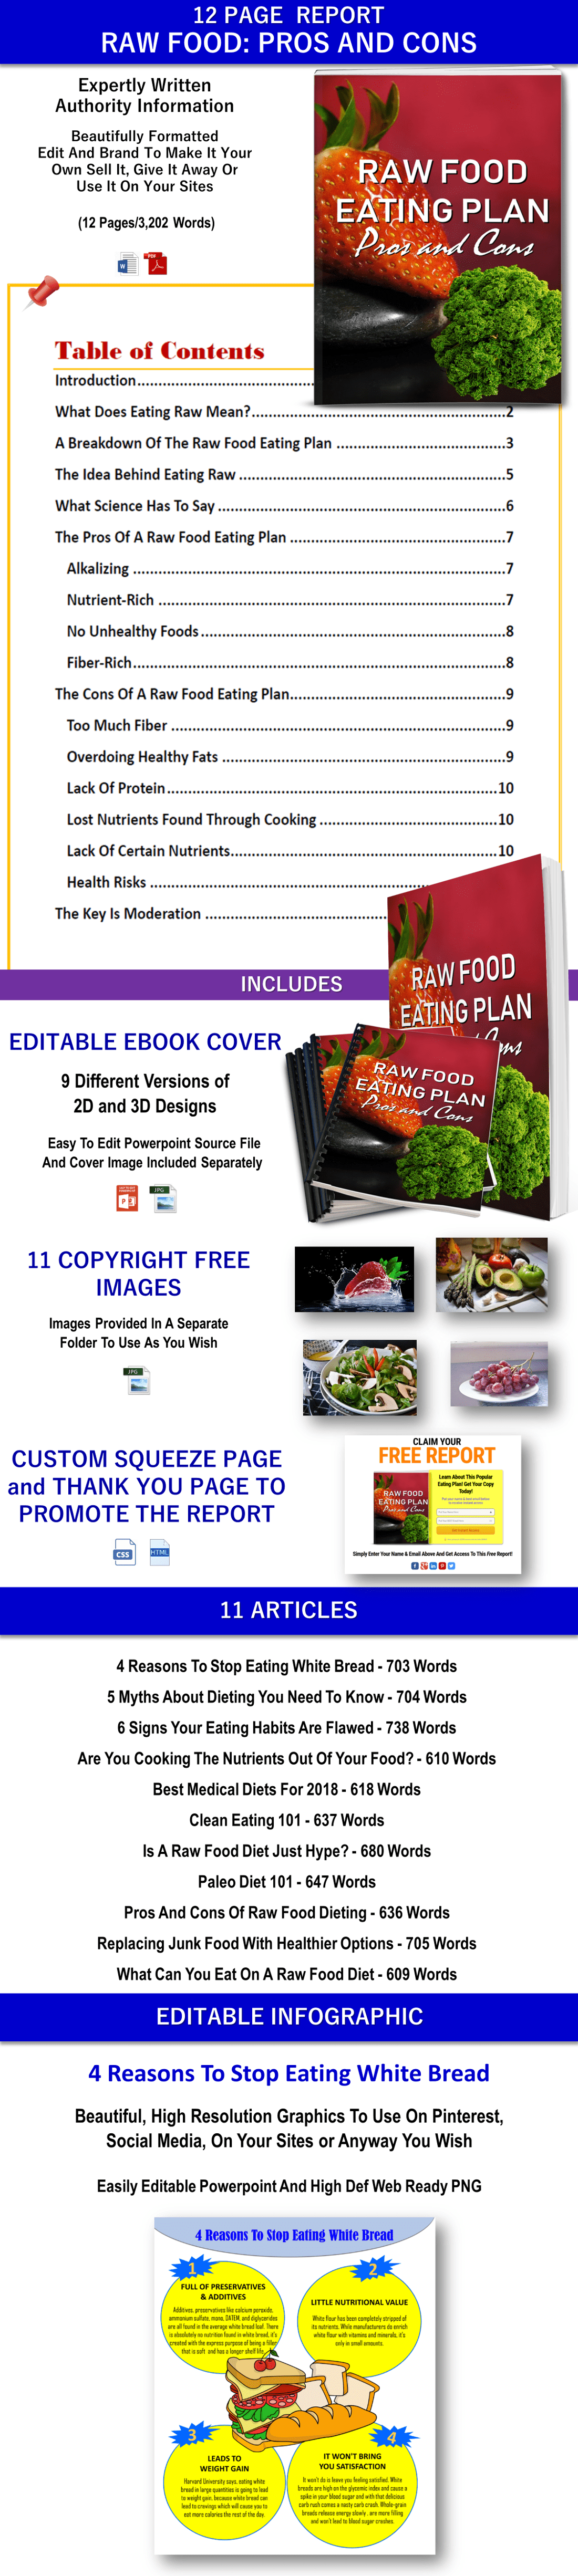 Huge Bundle Of Quality Health, Diet And Weight Loss Content with PLR Rights